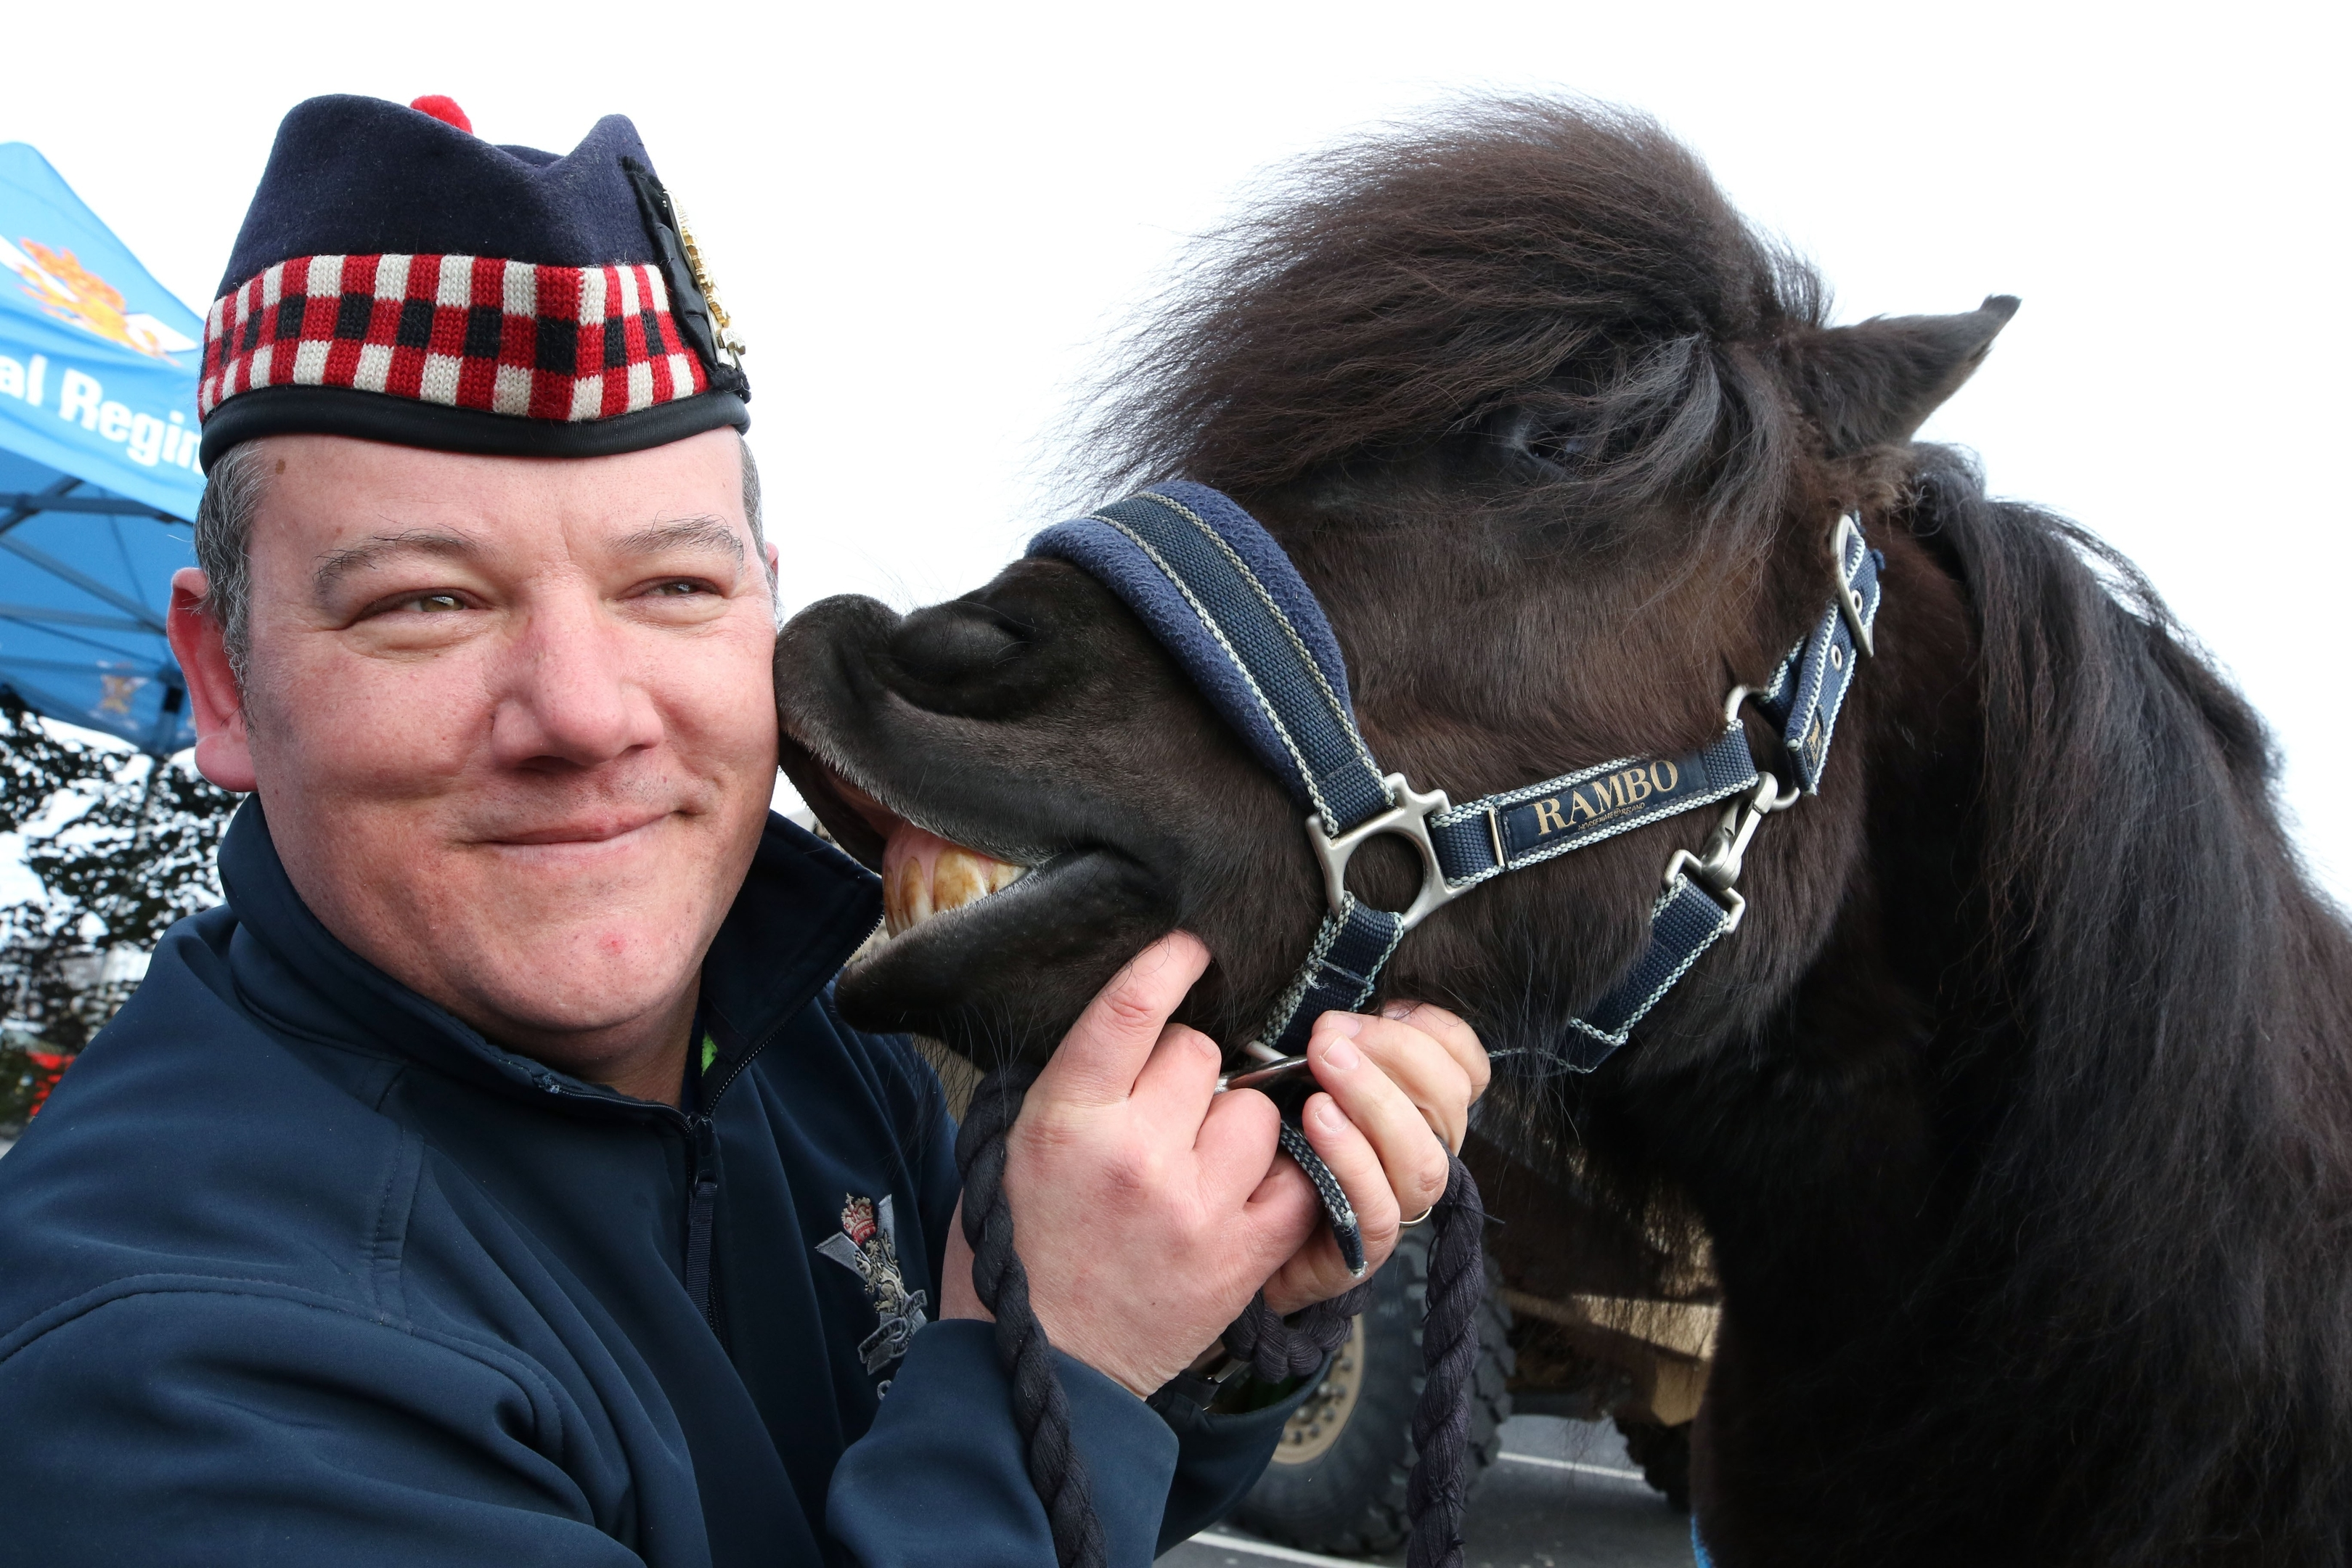 Lance Corporal Cruachan IV, the Shetland Pony mascot of the Royal Regiment Scotland, with Pony Major Mark Wilkinson at the Tesco store in the Eastfield retail park, Inverness